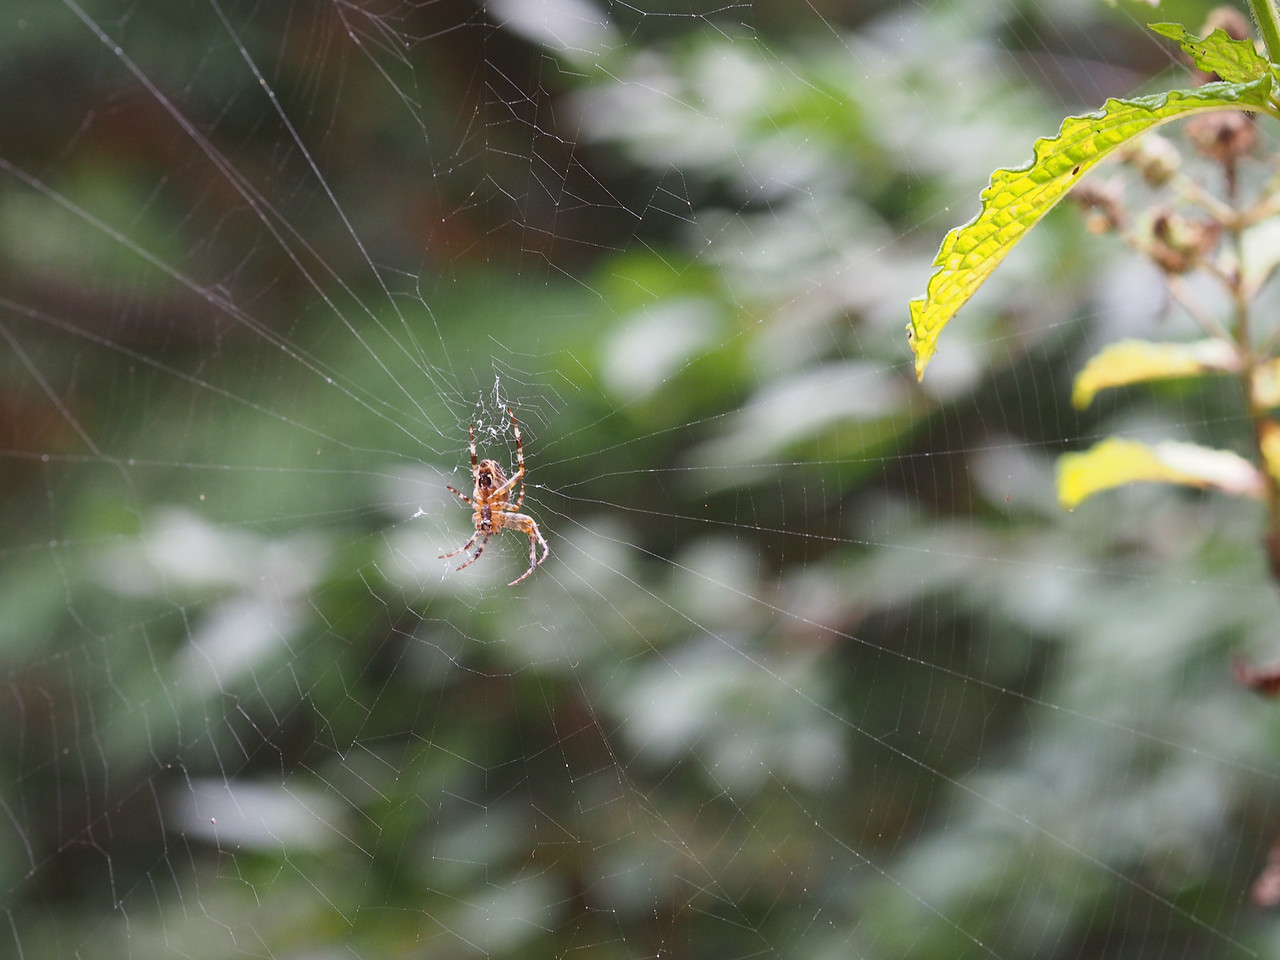 2013 29 Sept Spiders 8